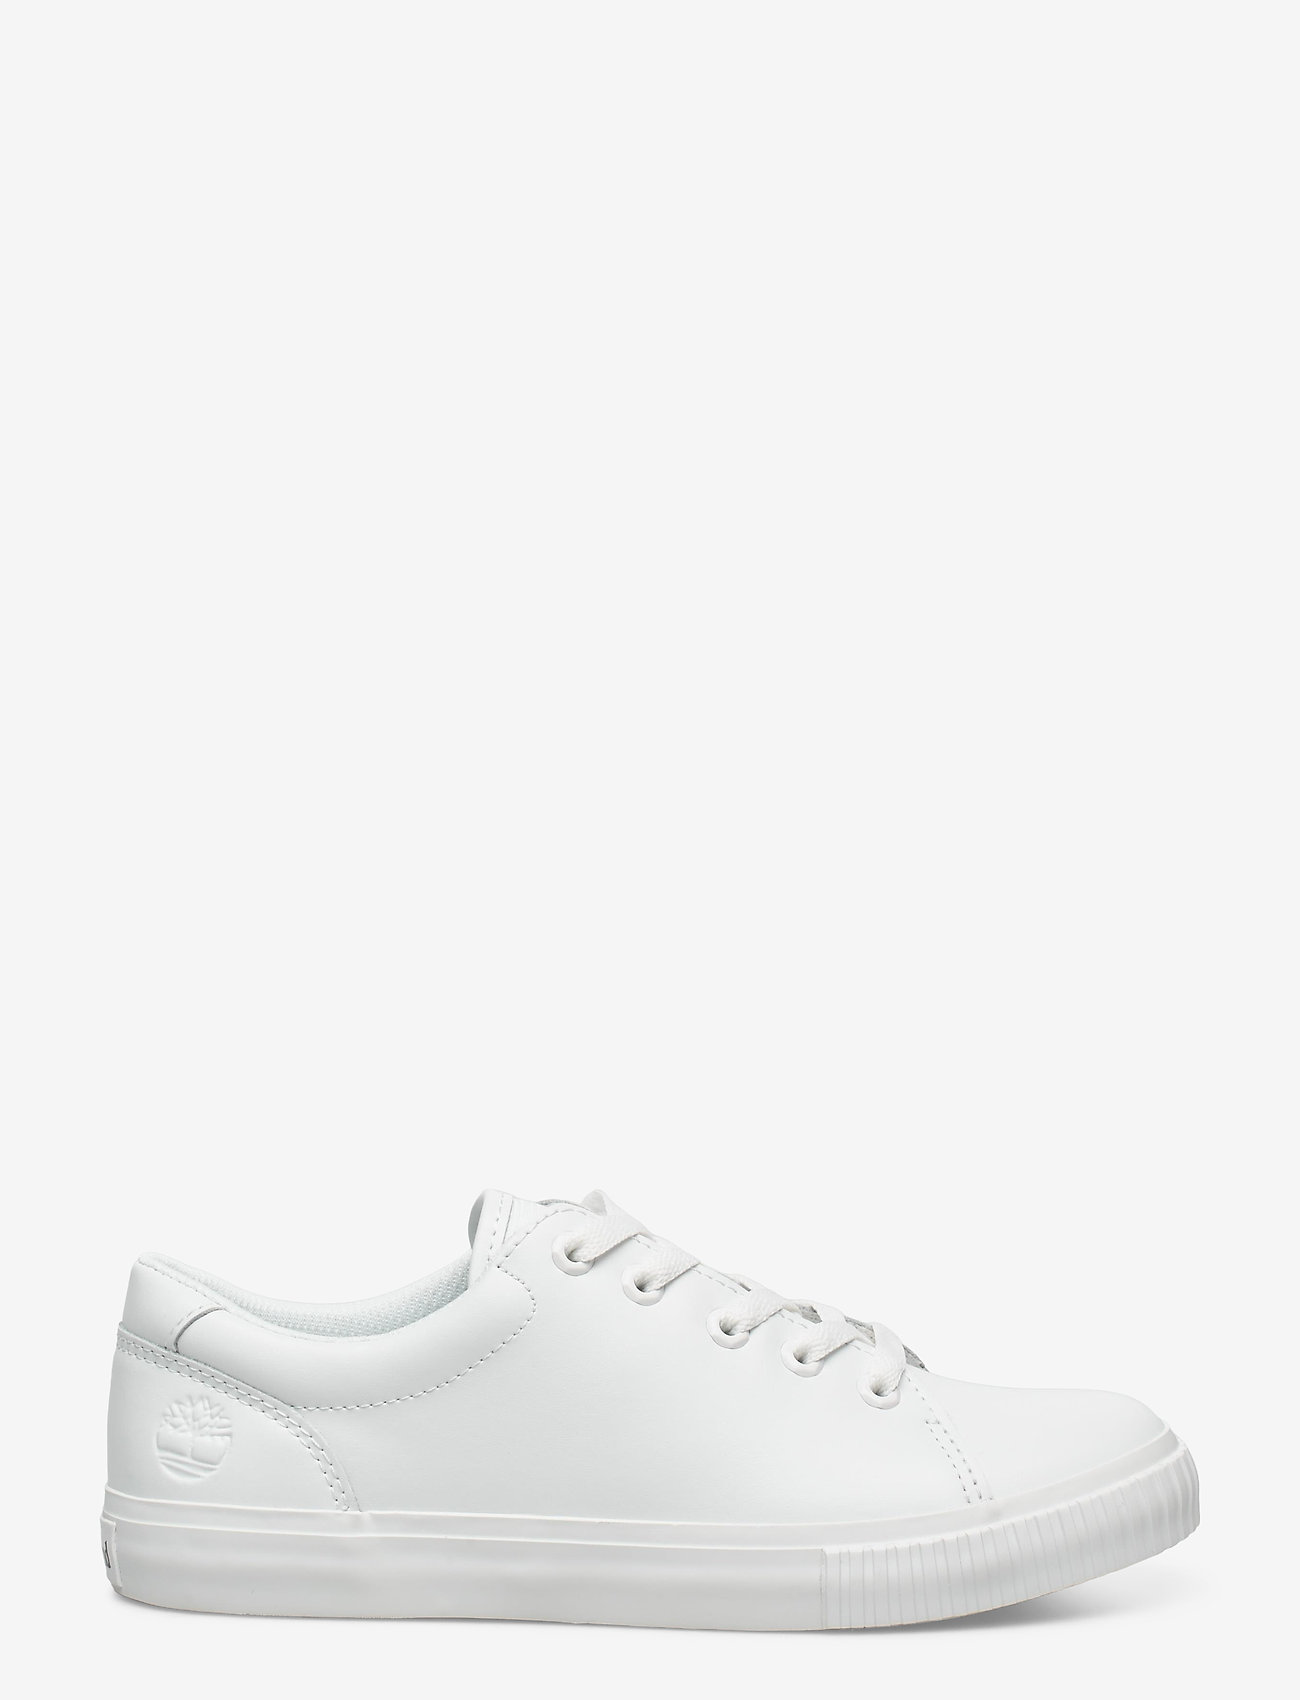 Timberland - SKYLA BAY LTHR OX WHI - lage sneakers - white - 1